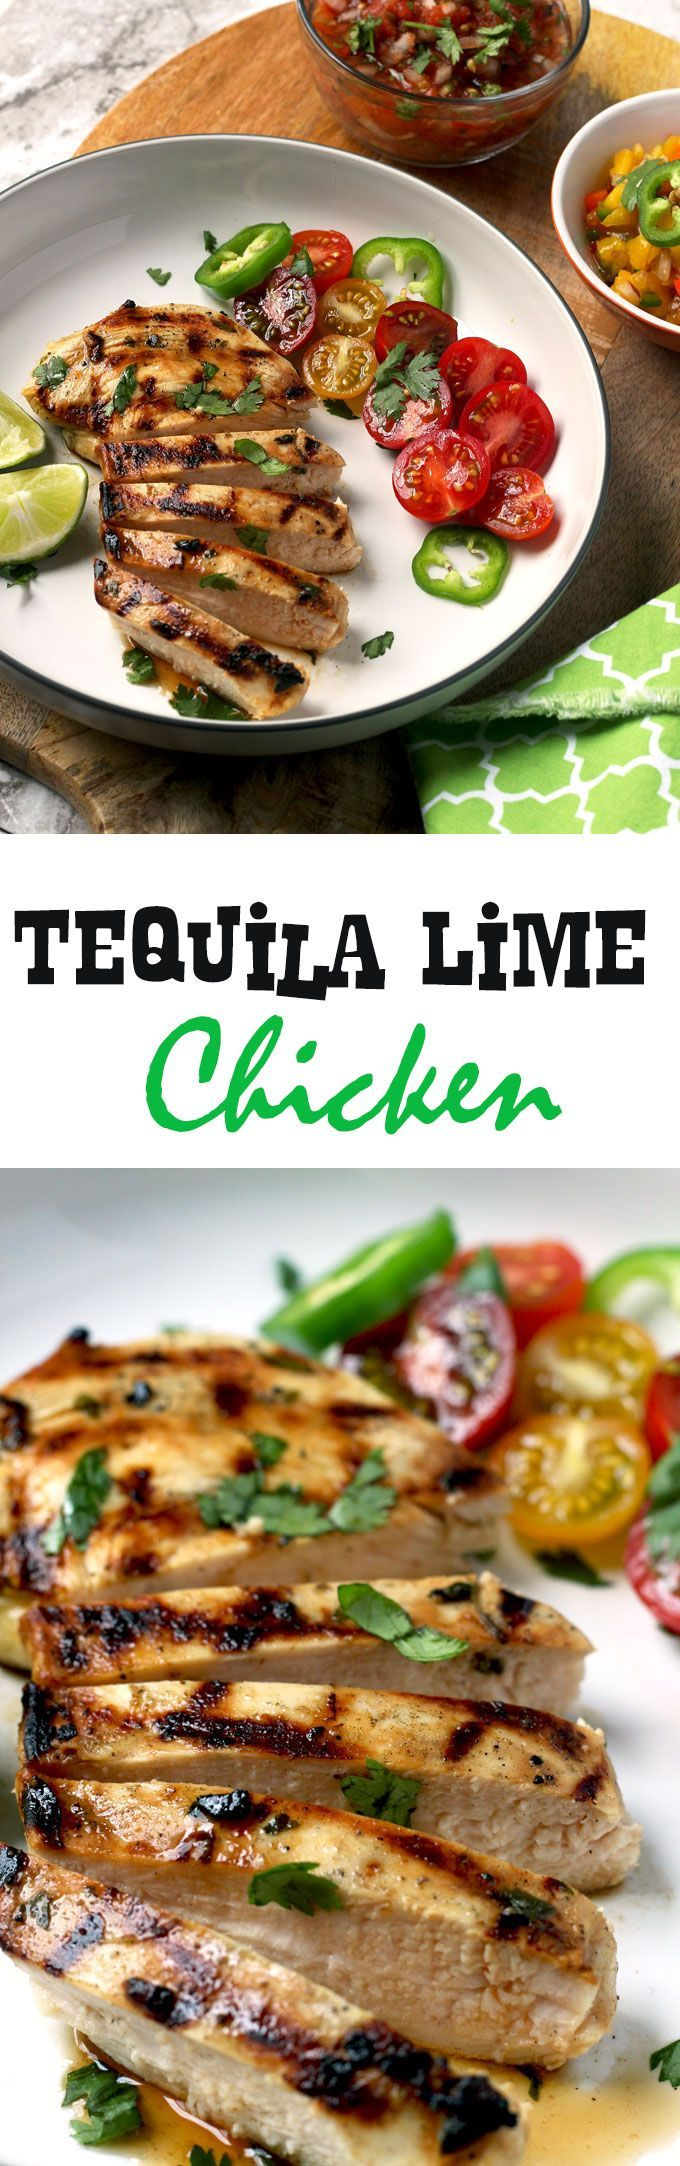 Easy, quick and incredibly flavorful. This grilled Tequila Lime Chicken is so